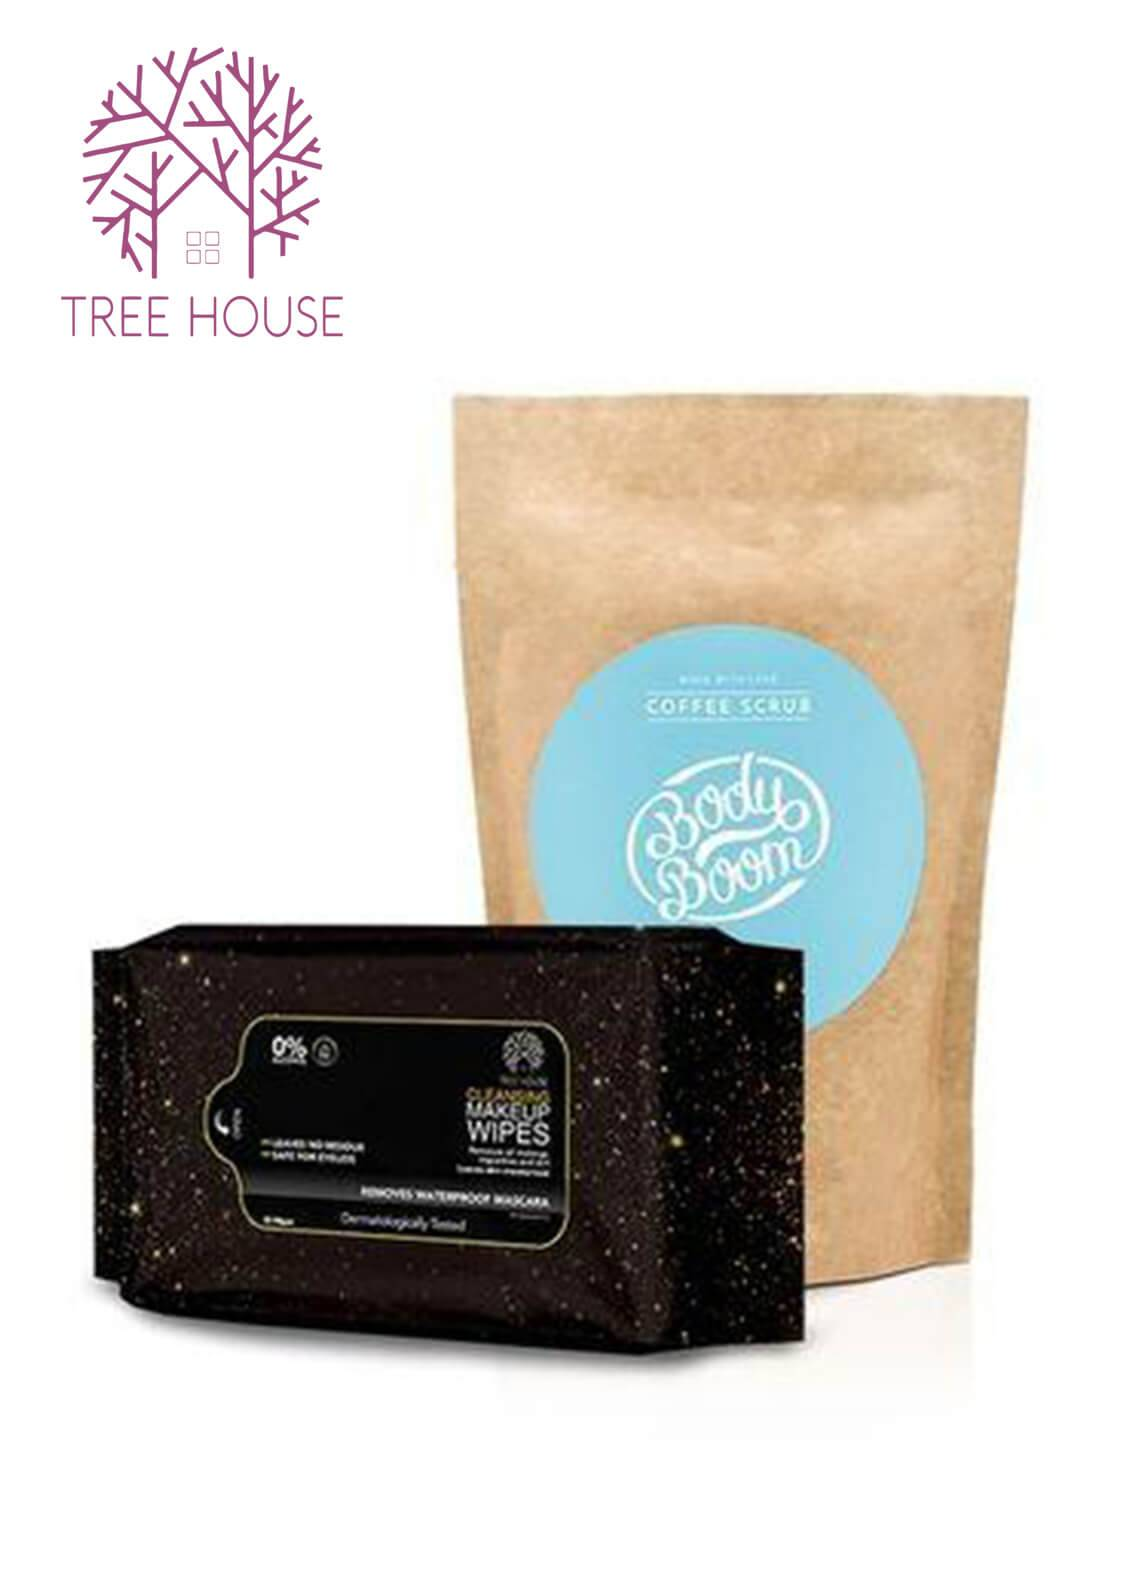 Coffee Scrub (Coconut Flavour)+Cleansing Makeup Wipes (Promo Pack)